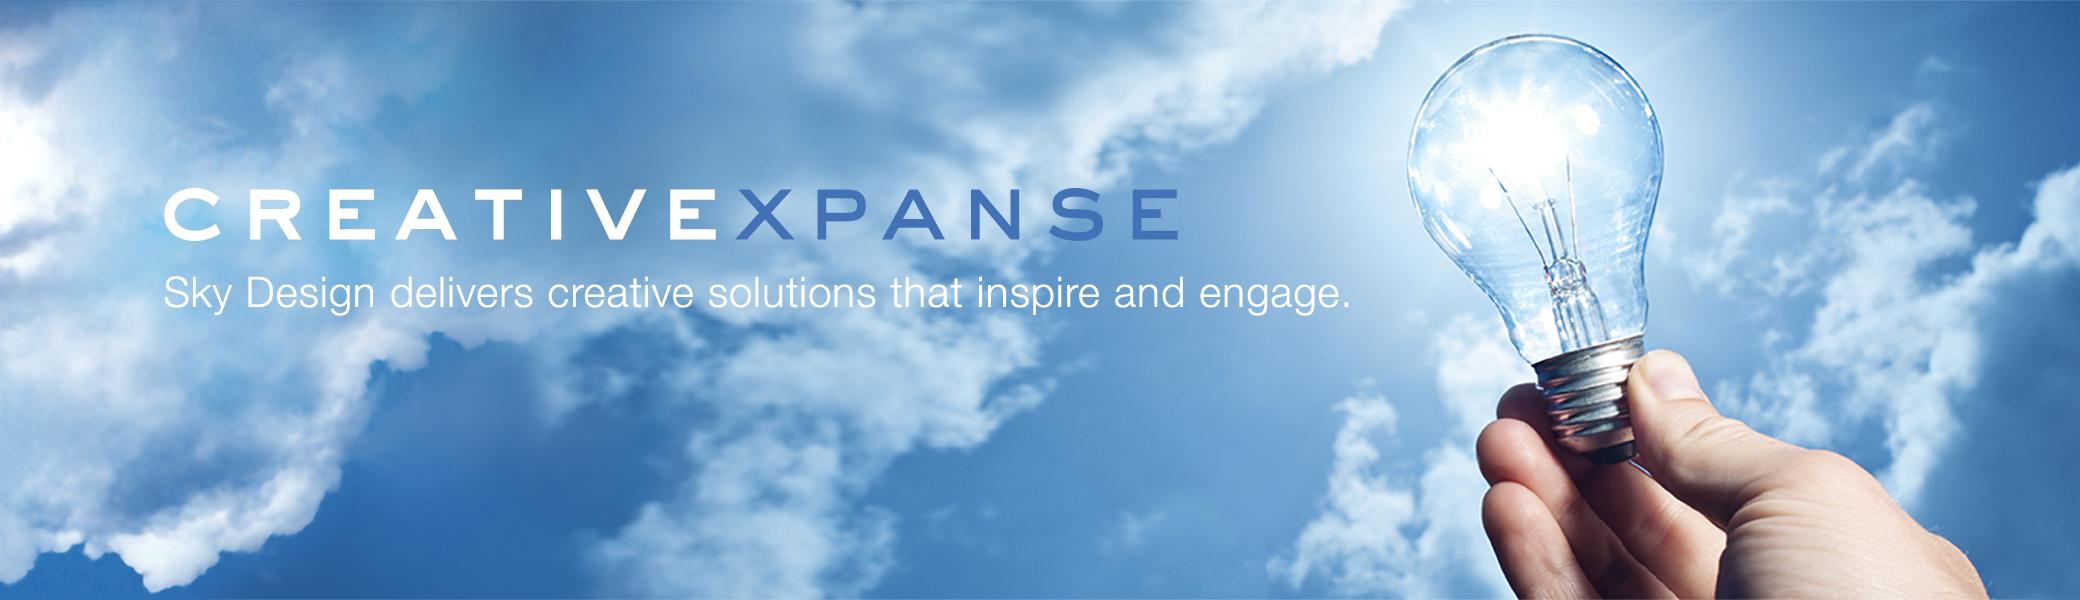 Sky Design delivers creative solutions that inspire and engage. Print